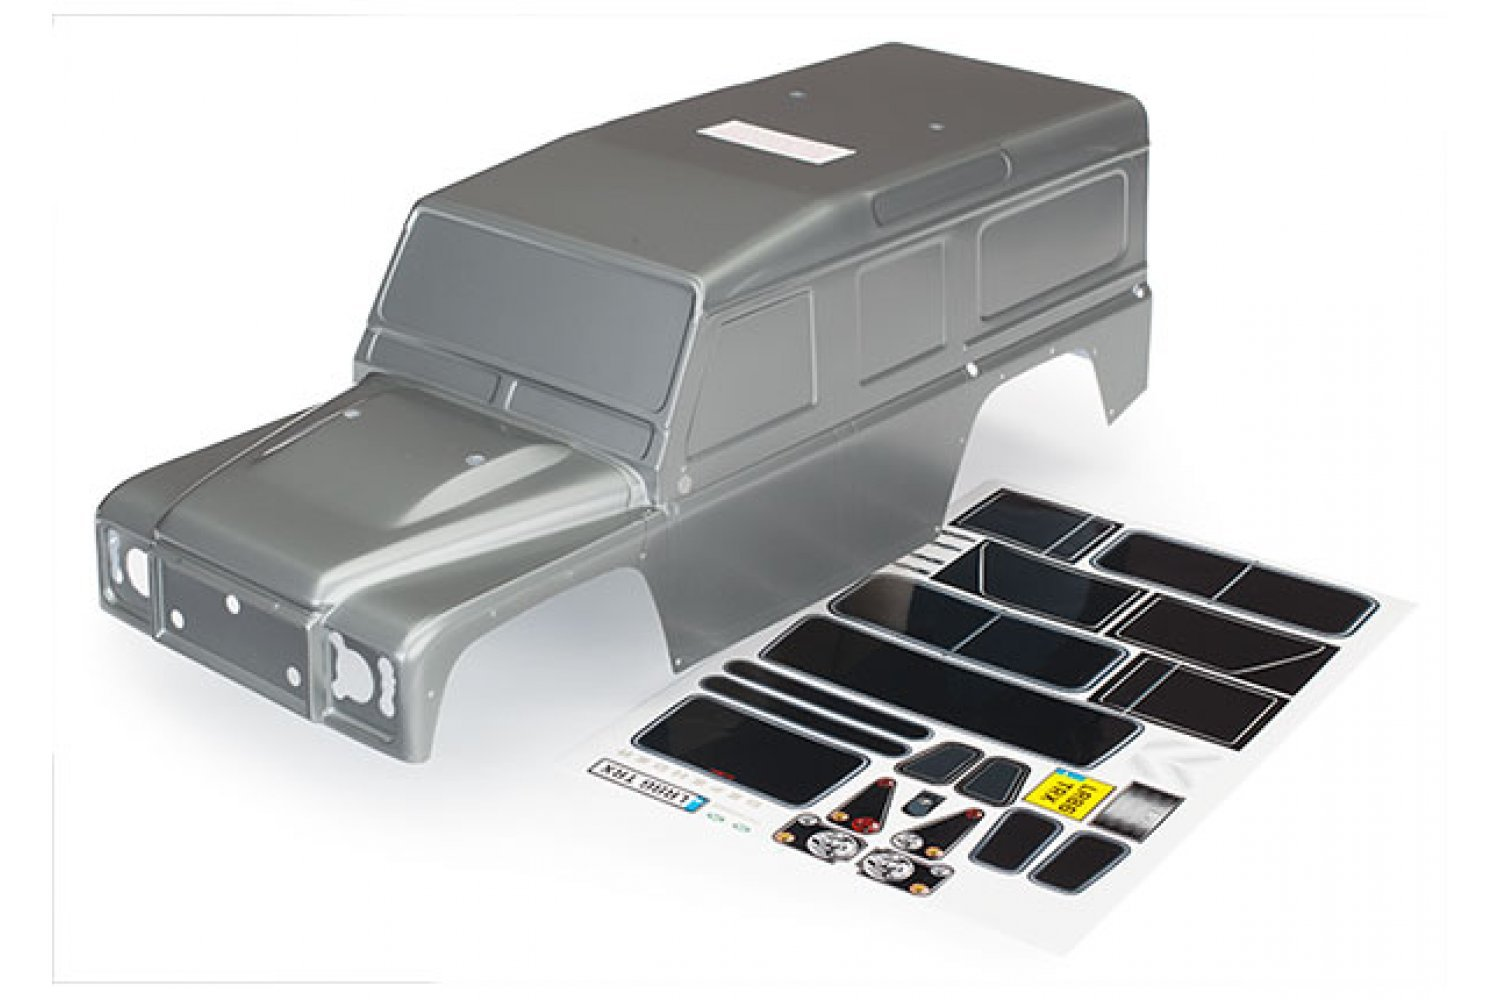 8011X | Traxxas TRX-4 Land Rover Defender Painted Grey Body Shell w/ Decal  Sheet